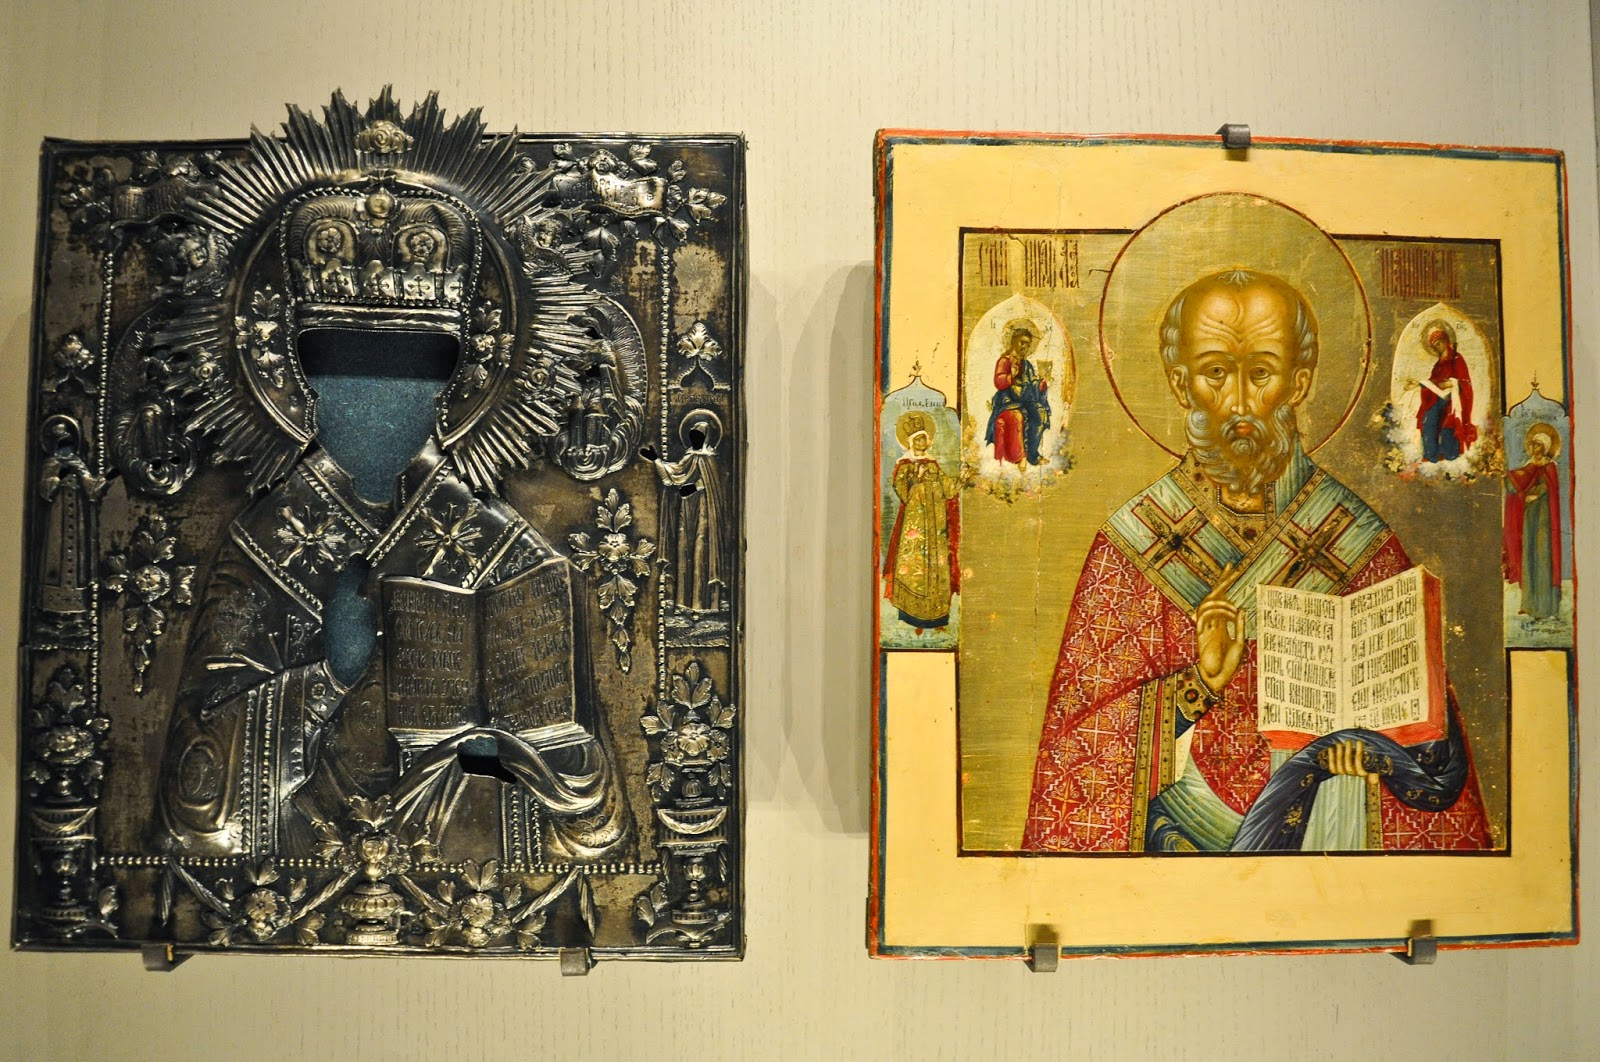 A Russian icon and its metal covering, Gallerie d'Italia, Palazzo Leoni Montanari, Vicenza, Italy